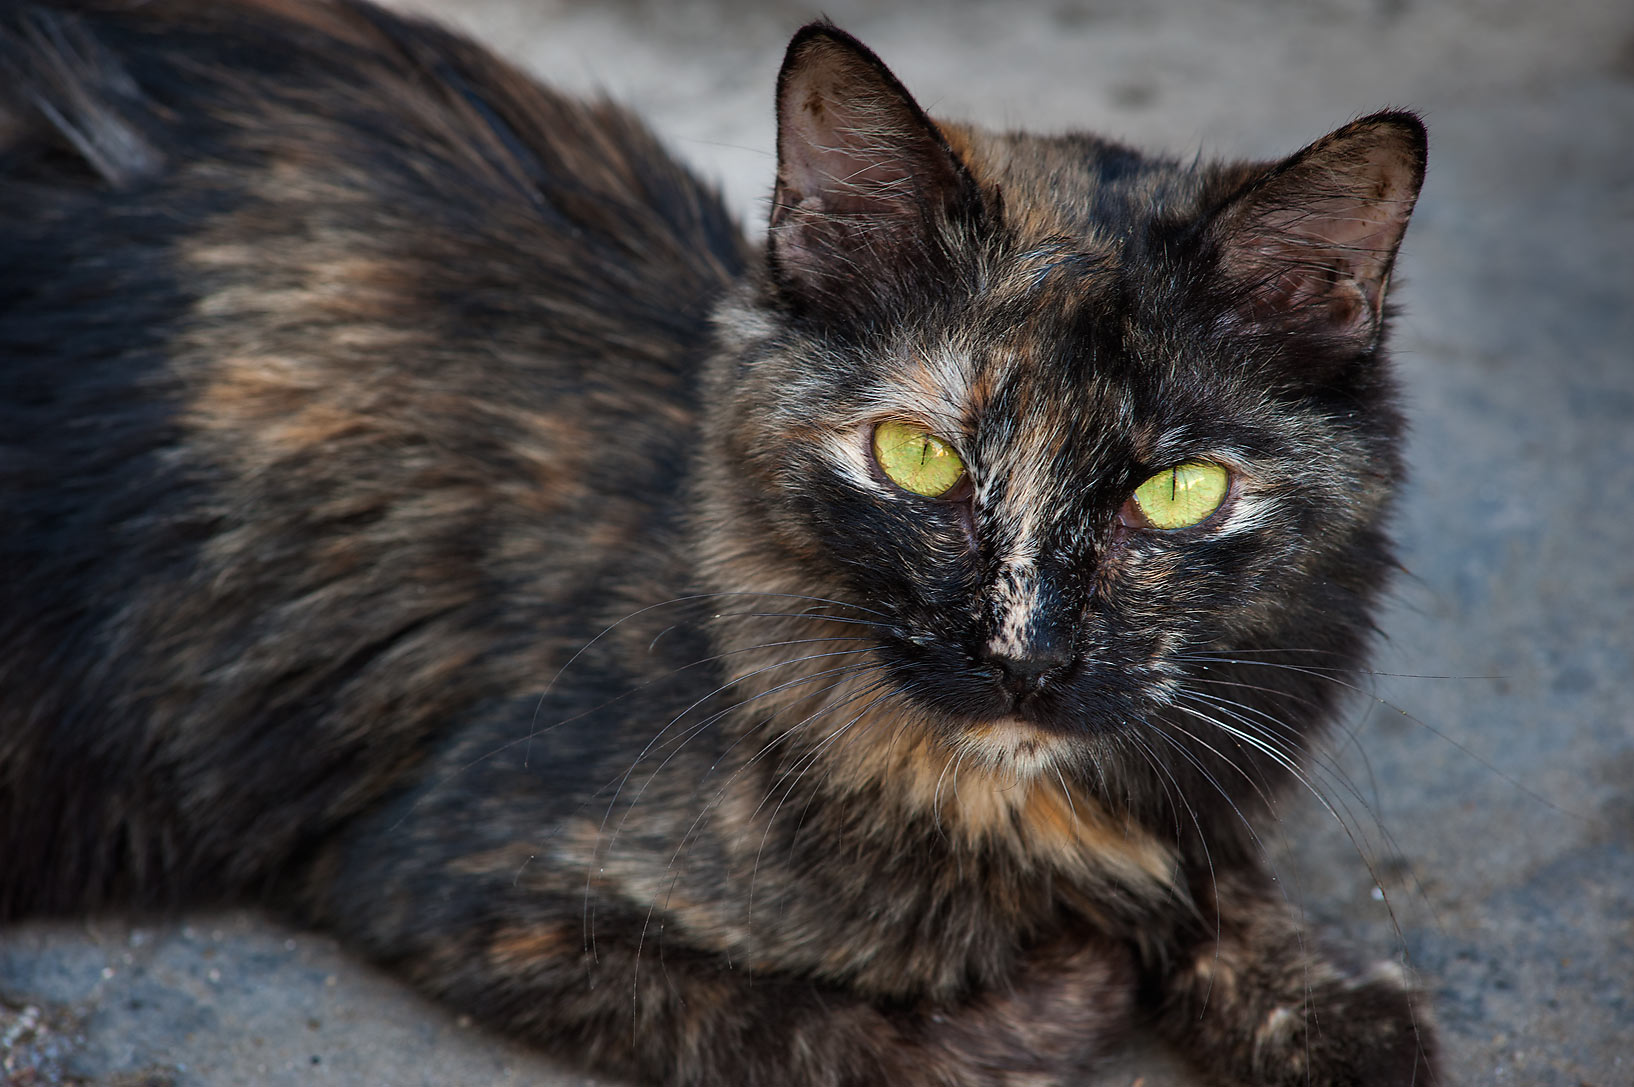 Tortoiseshell cat near Al Najada St. in Musheirib area. Doha, Qatar